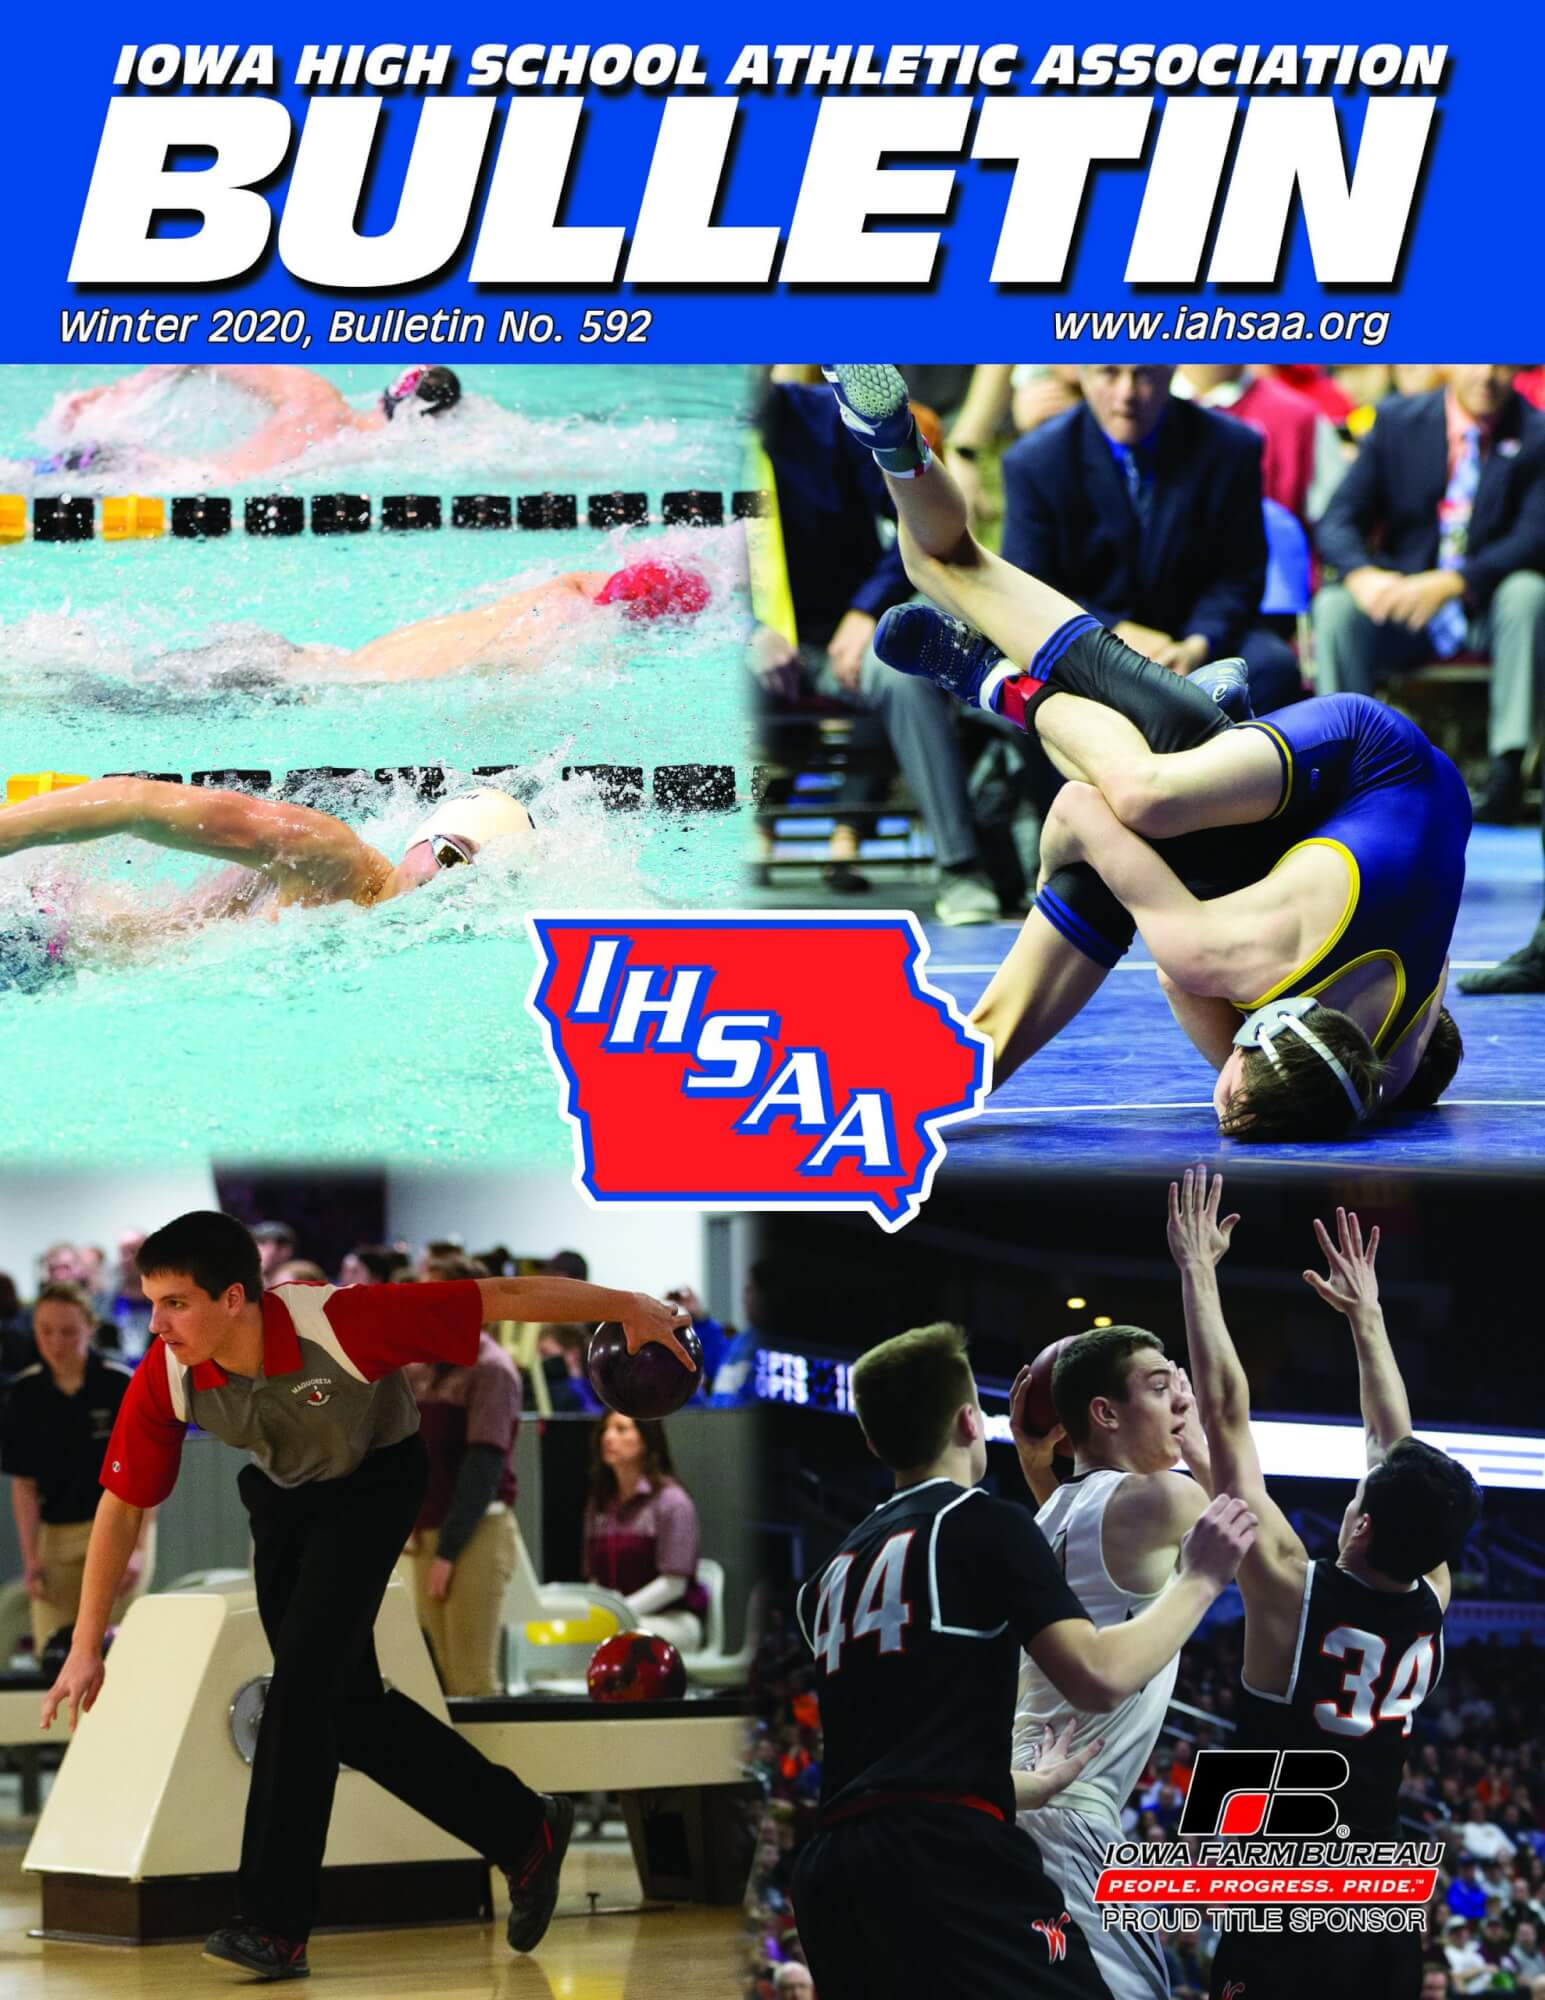 IHSAA Bulletin: Winter 2019-20